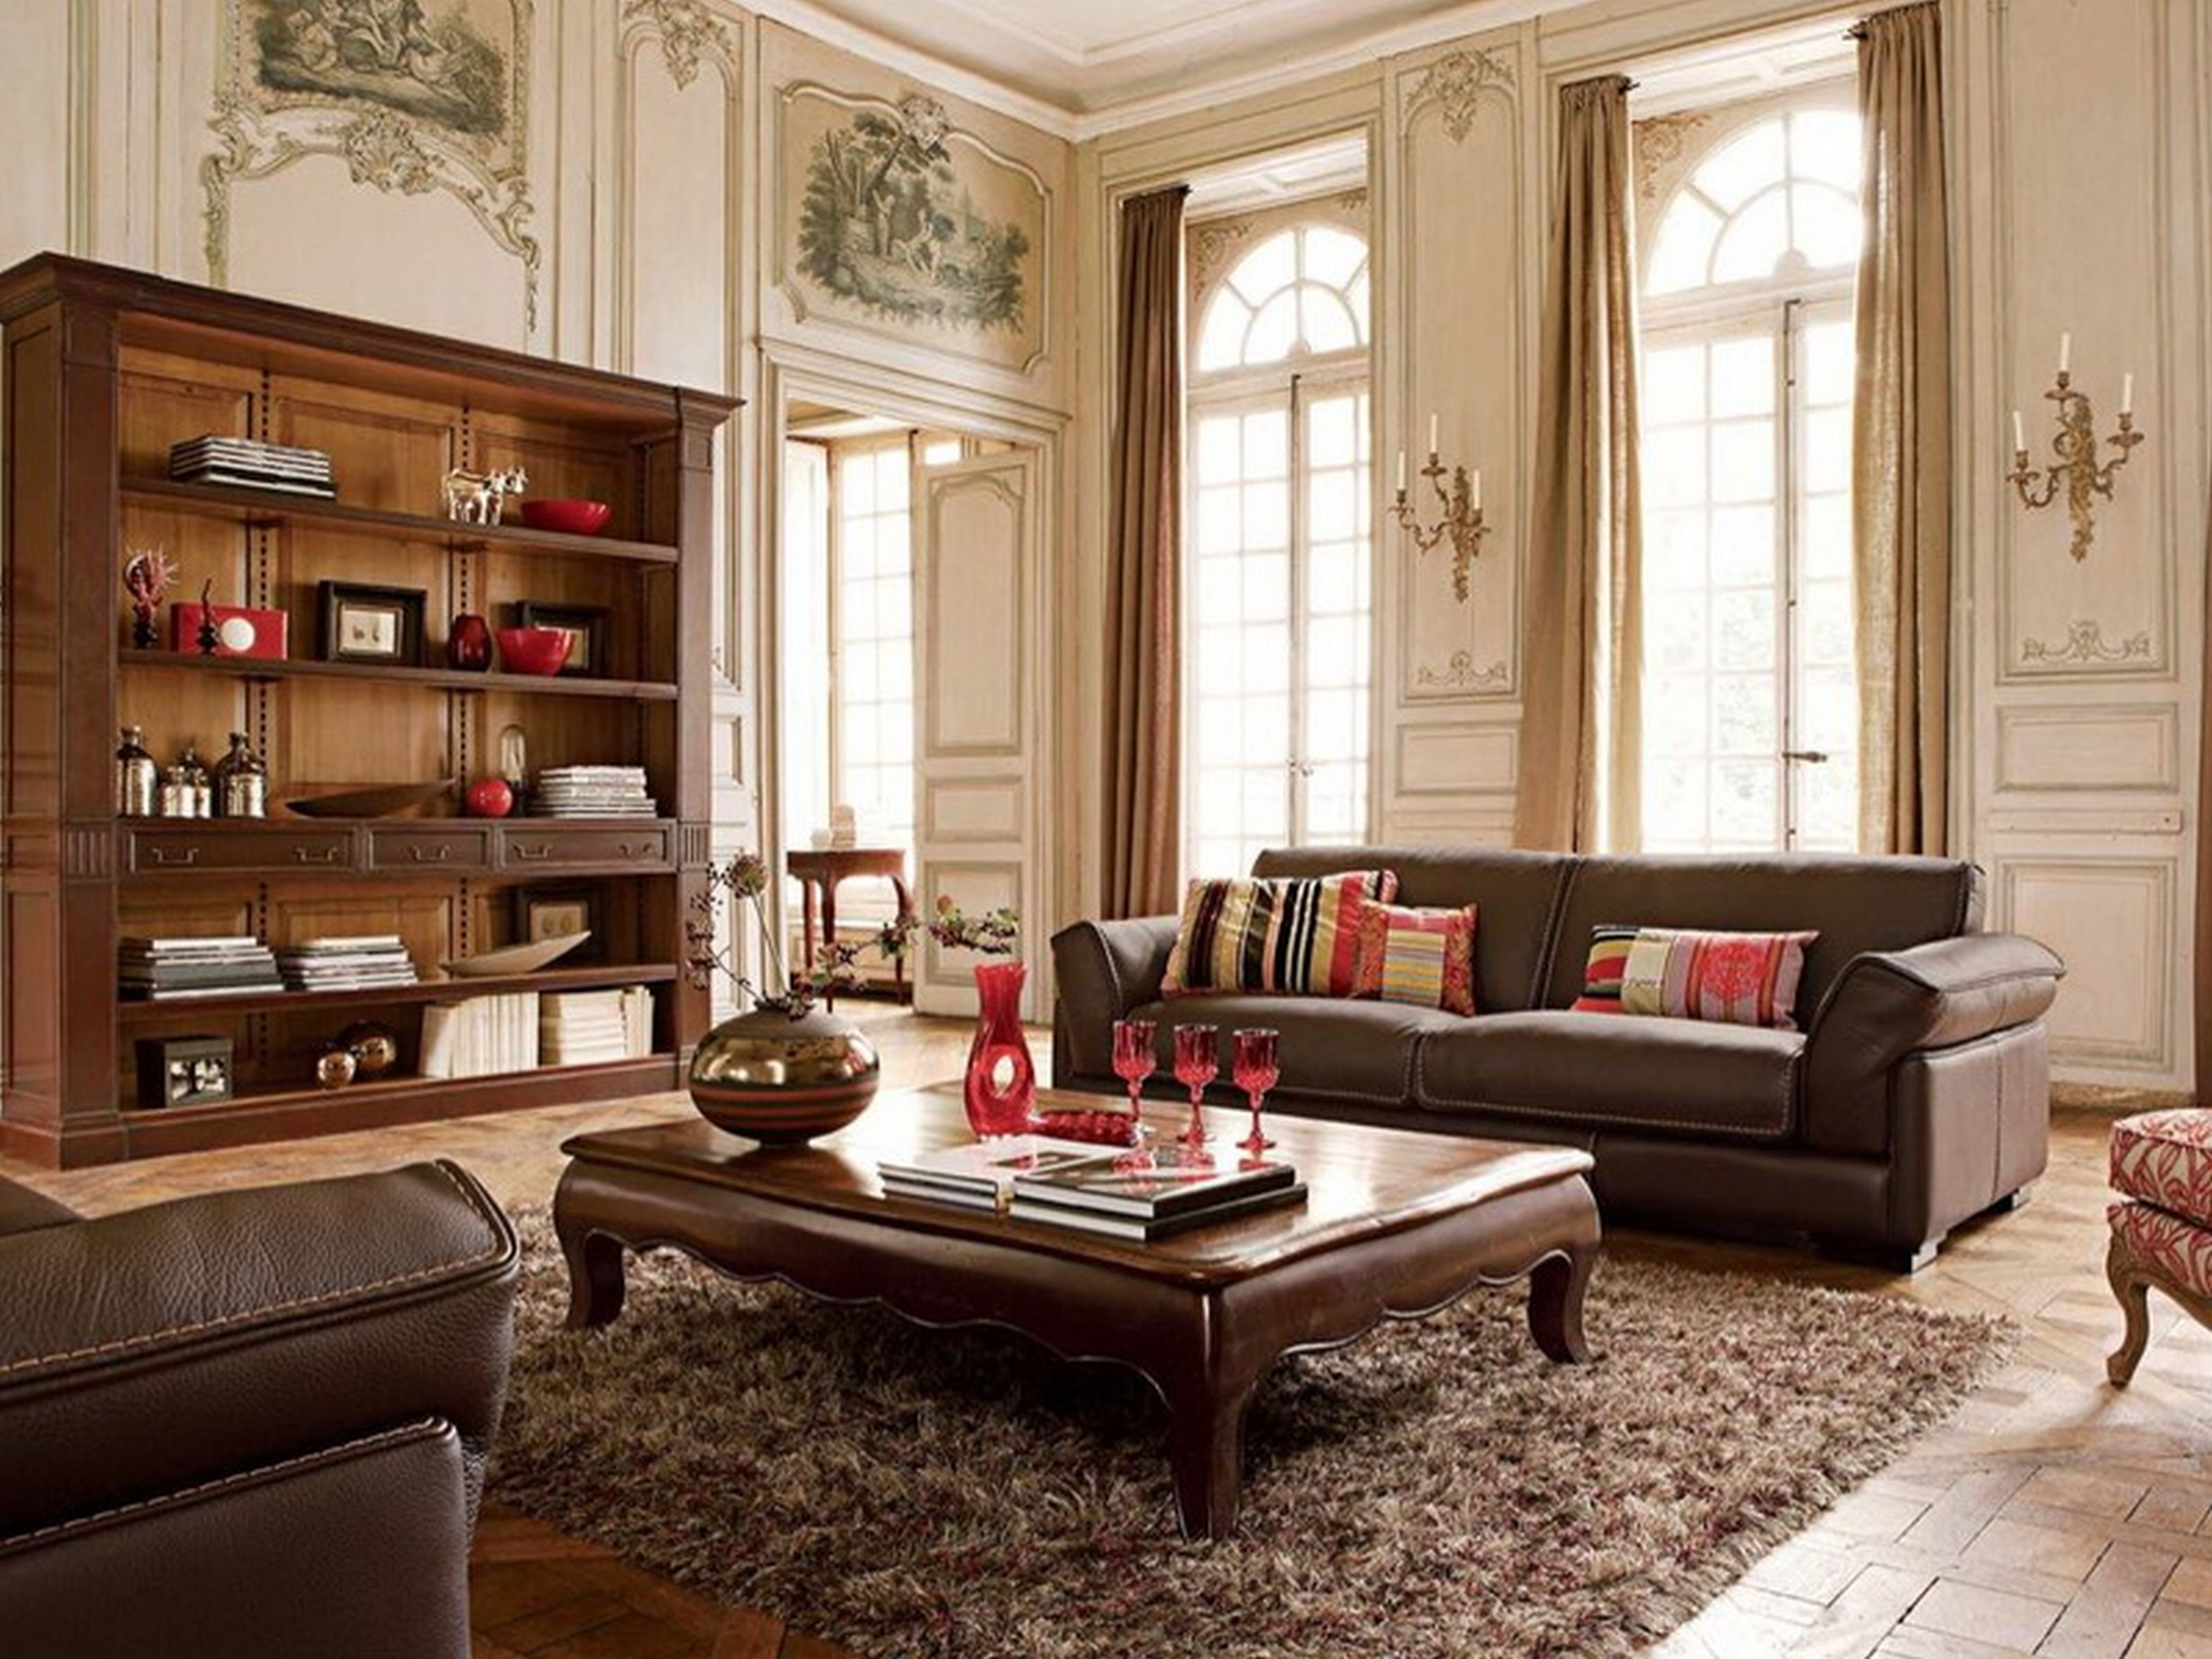 lovable-built-in-open-storage-cabinets-with-rectangular-teak-wood-coffee-desk-as-well-as-luxury-sofa